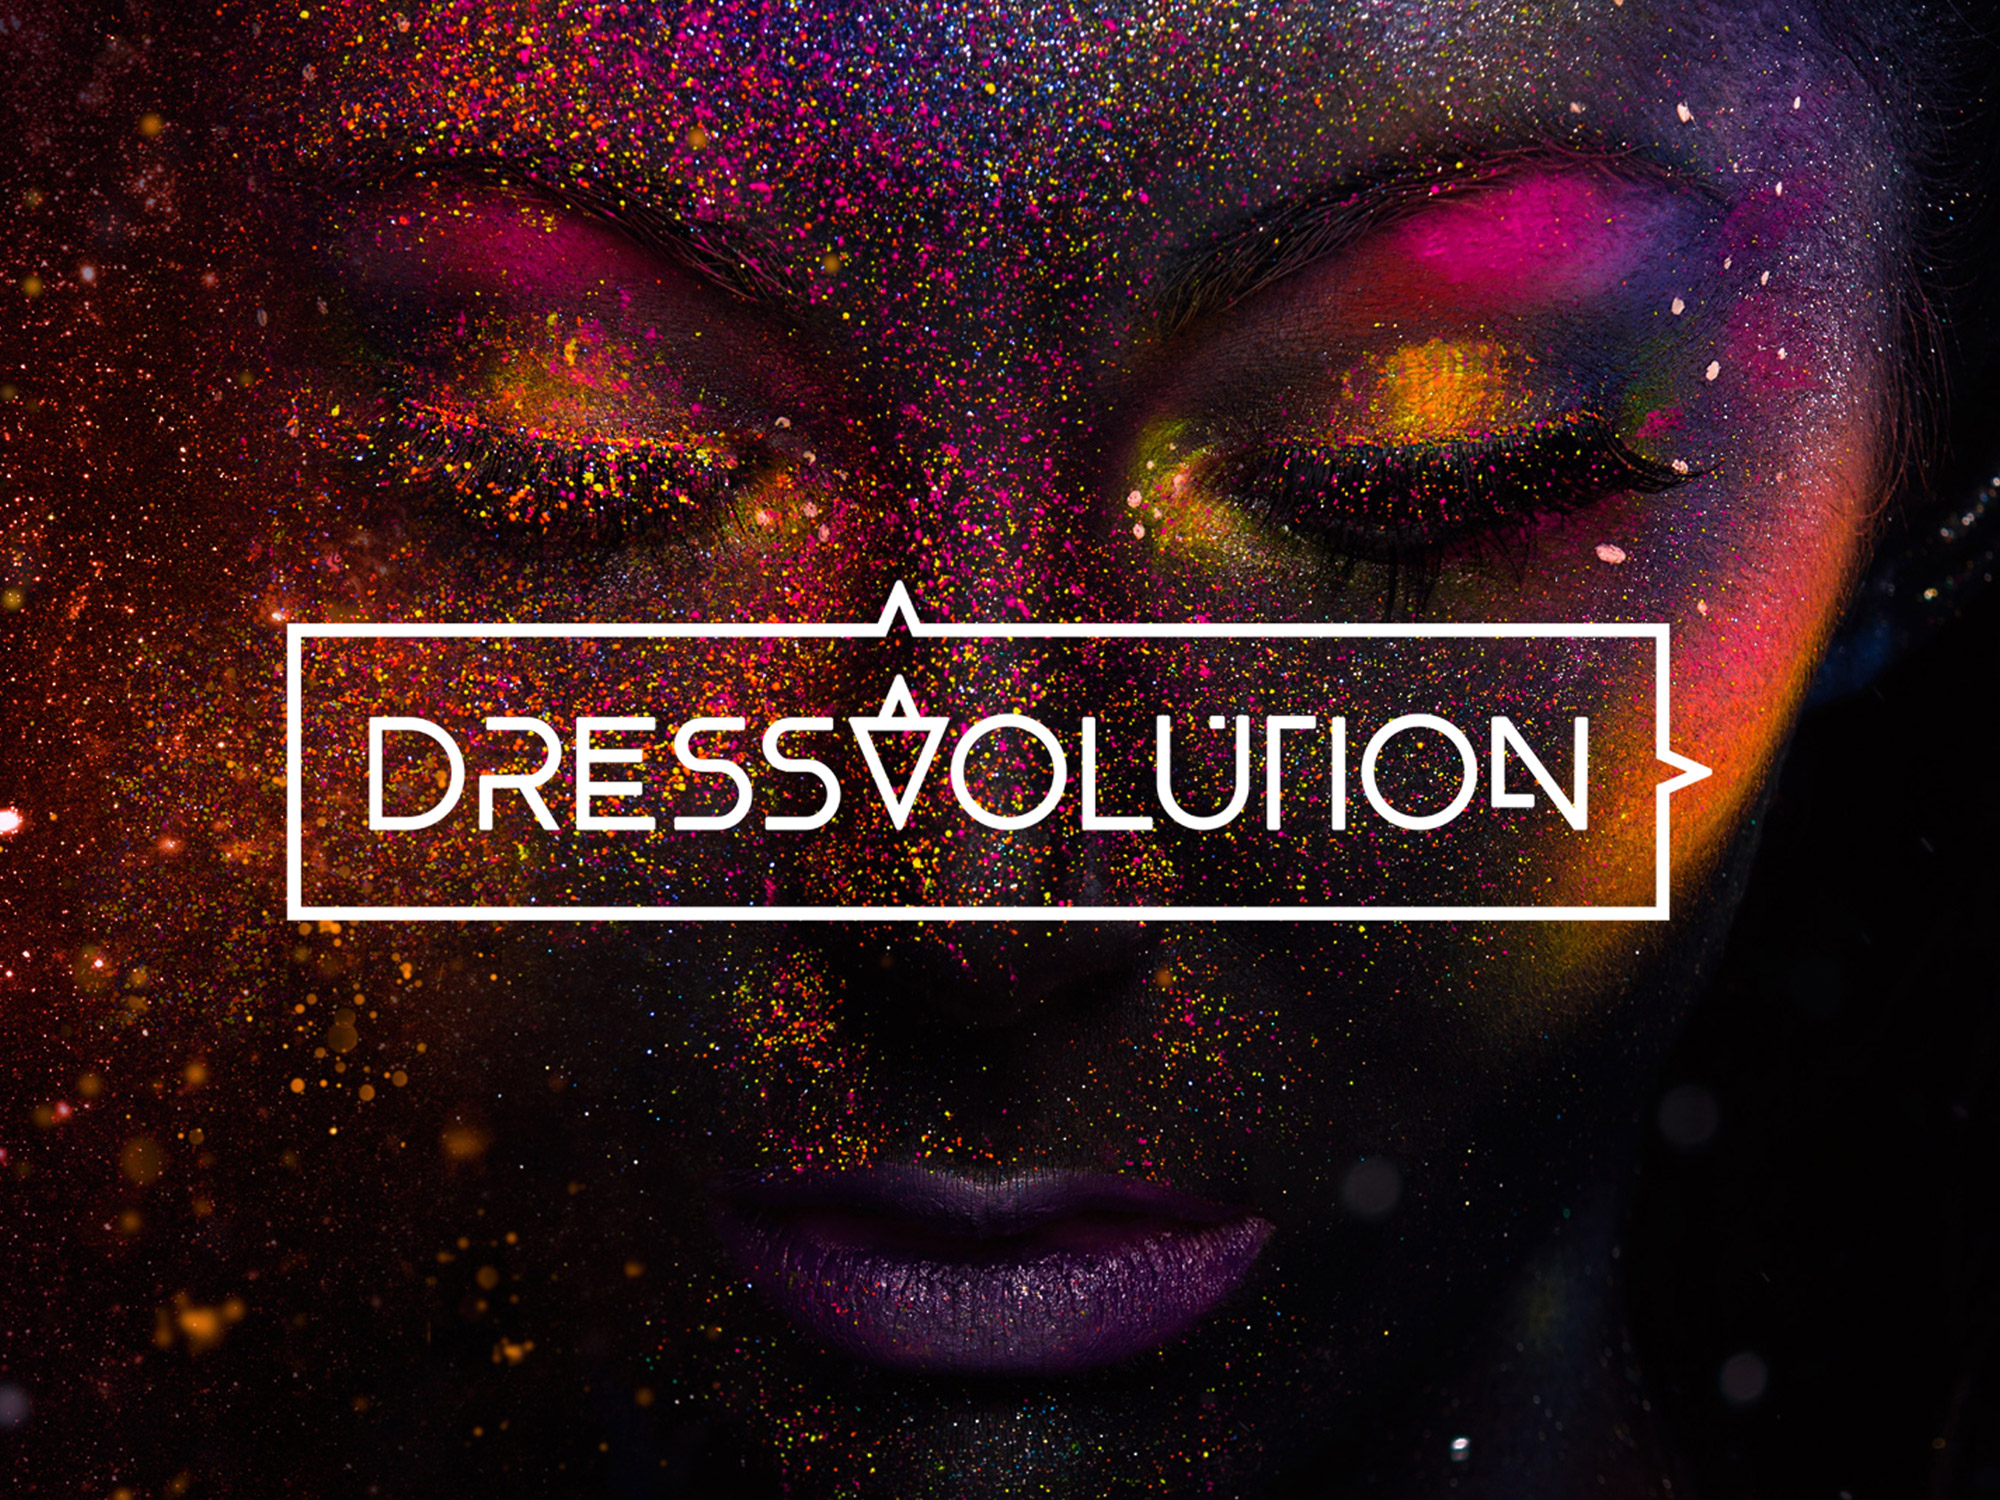 Dressvolution